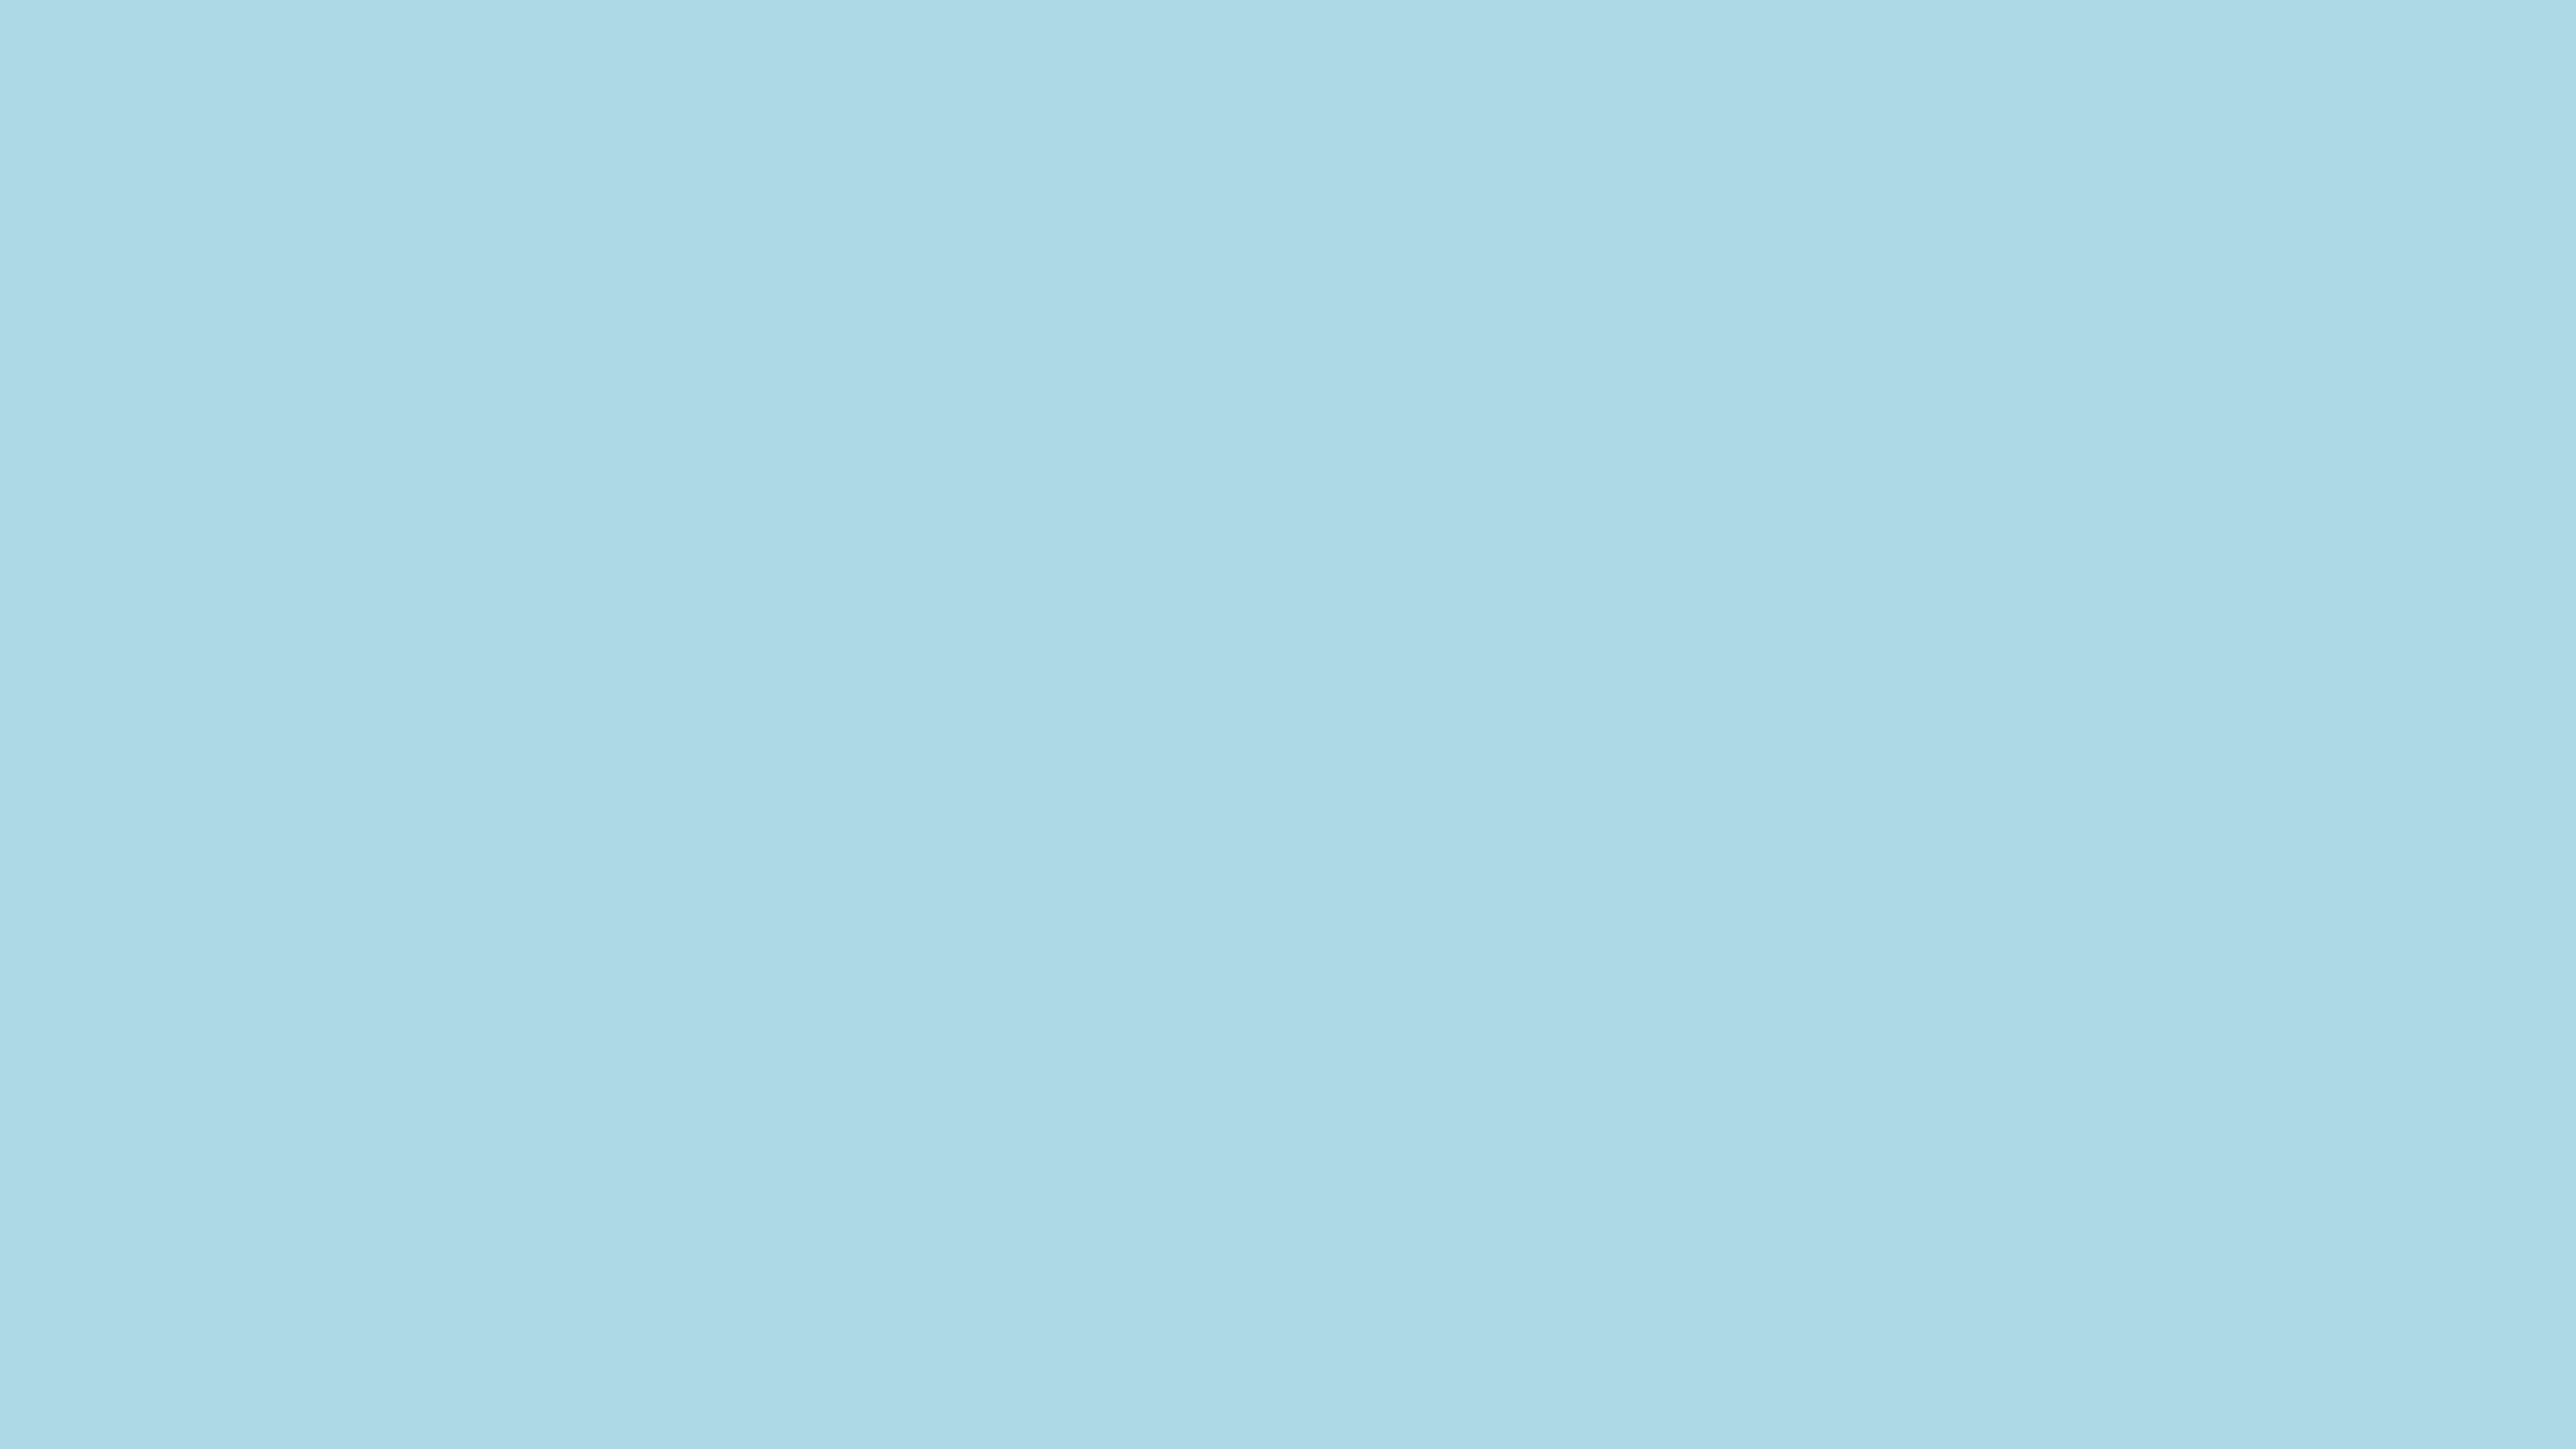 5120x2880 Light Blue Solid Color Background